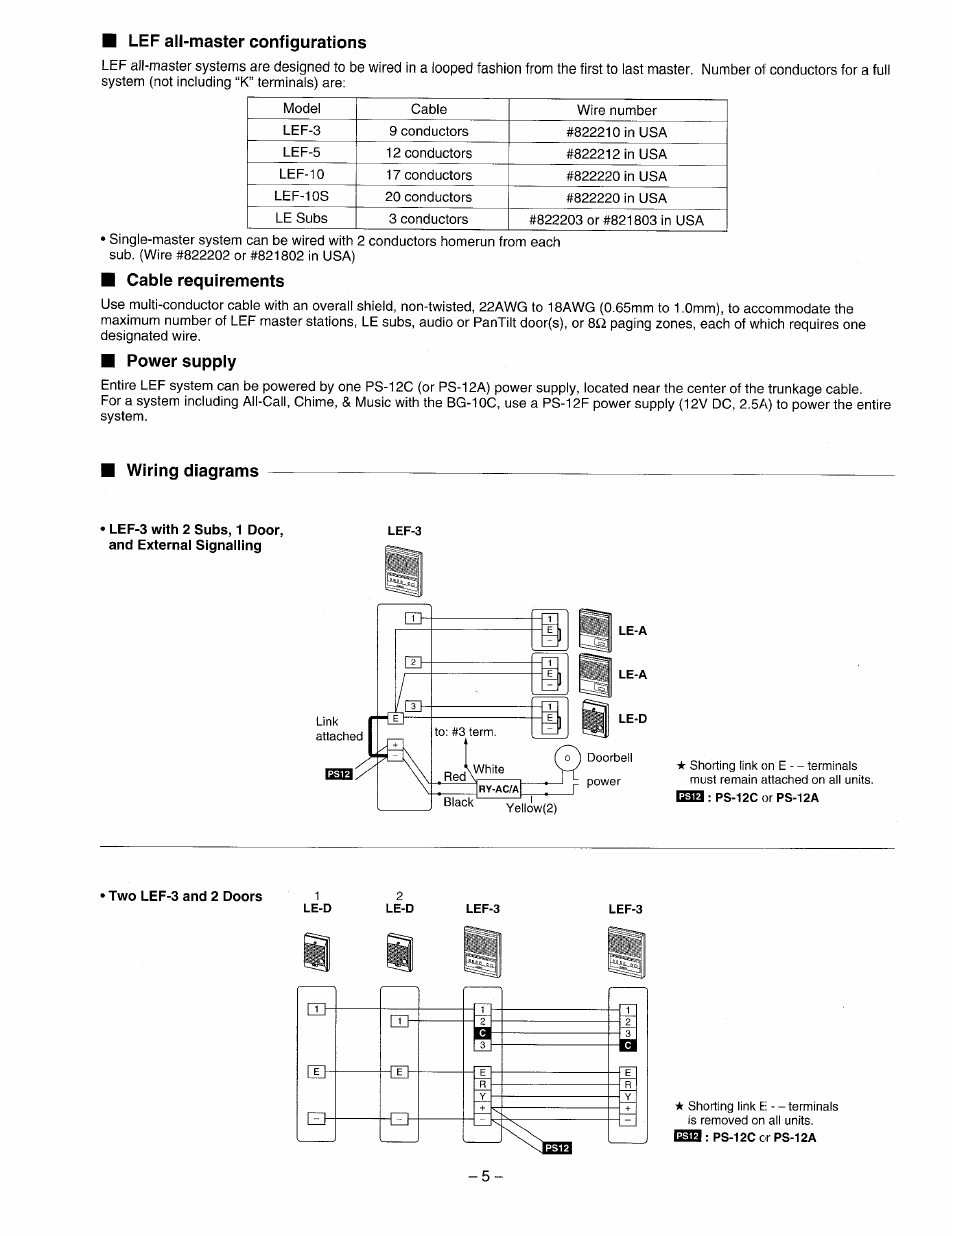 Cable requirements, Power supply, Wiring diagrams | Aiphone LEF-3 User  Manual | Page 5 / 12